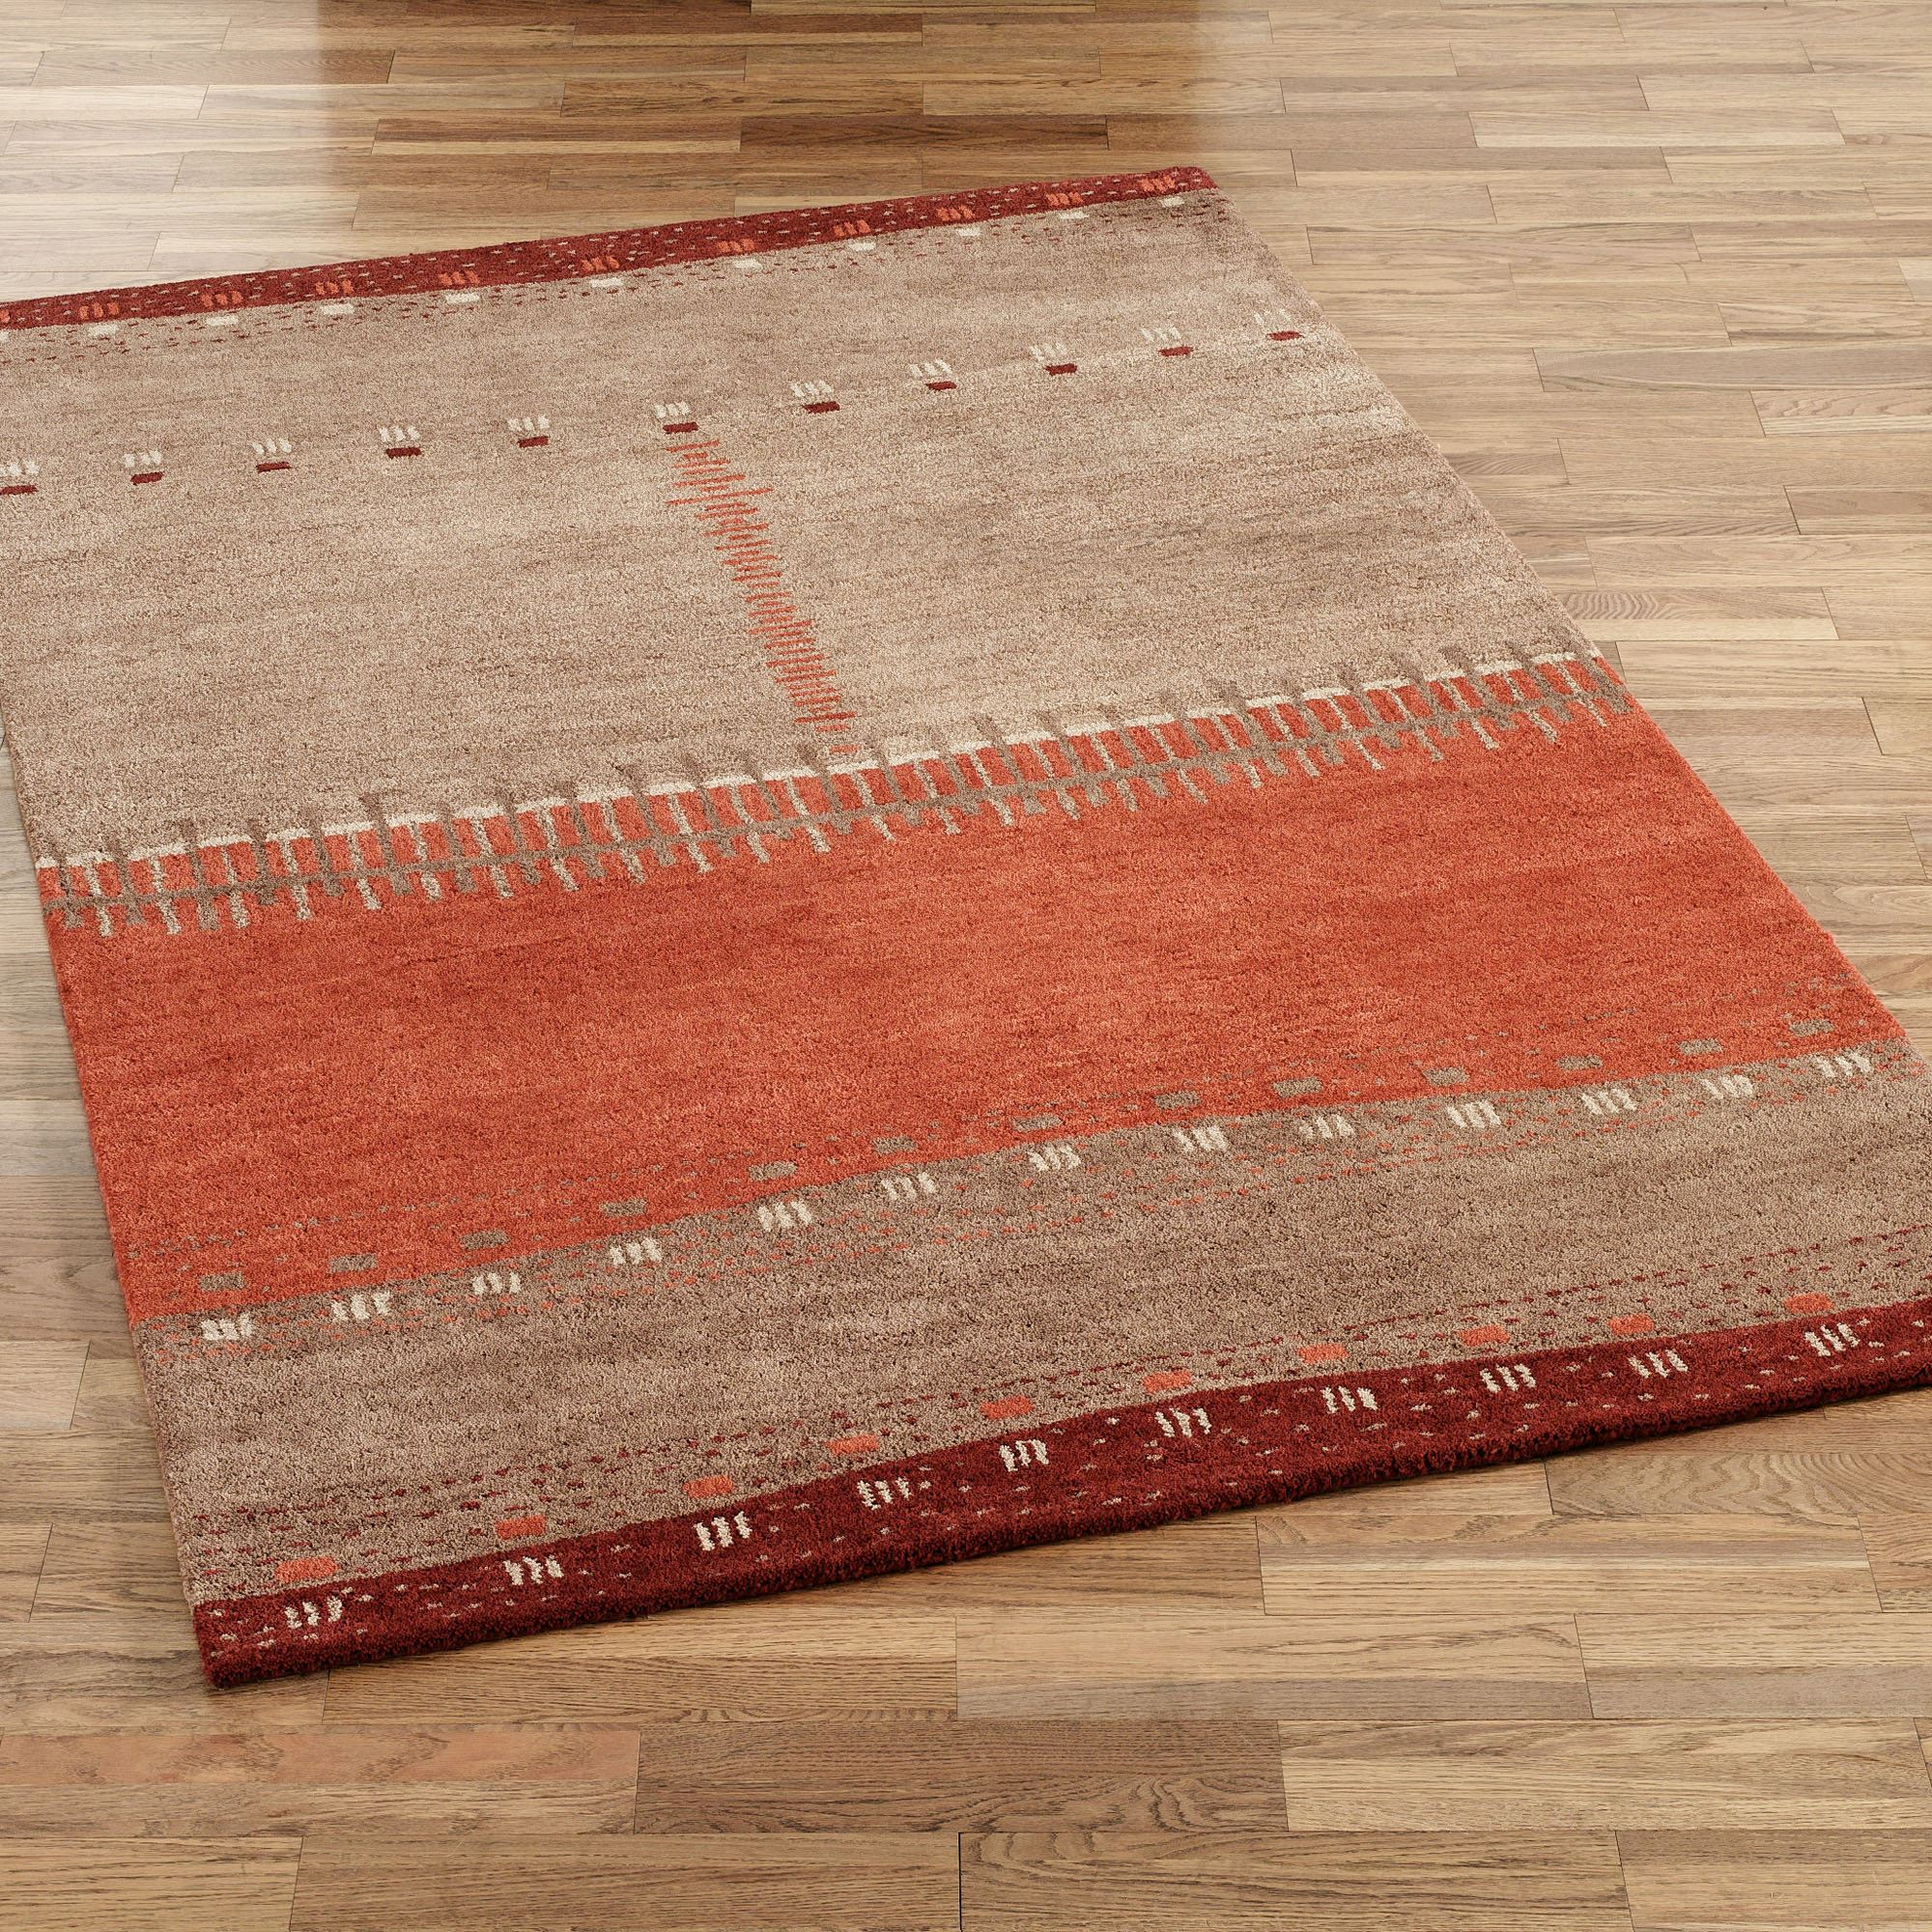 southwest rugs path in sand rectangle rug brown IZWAYLC